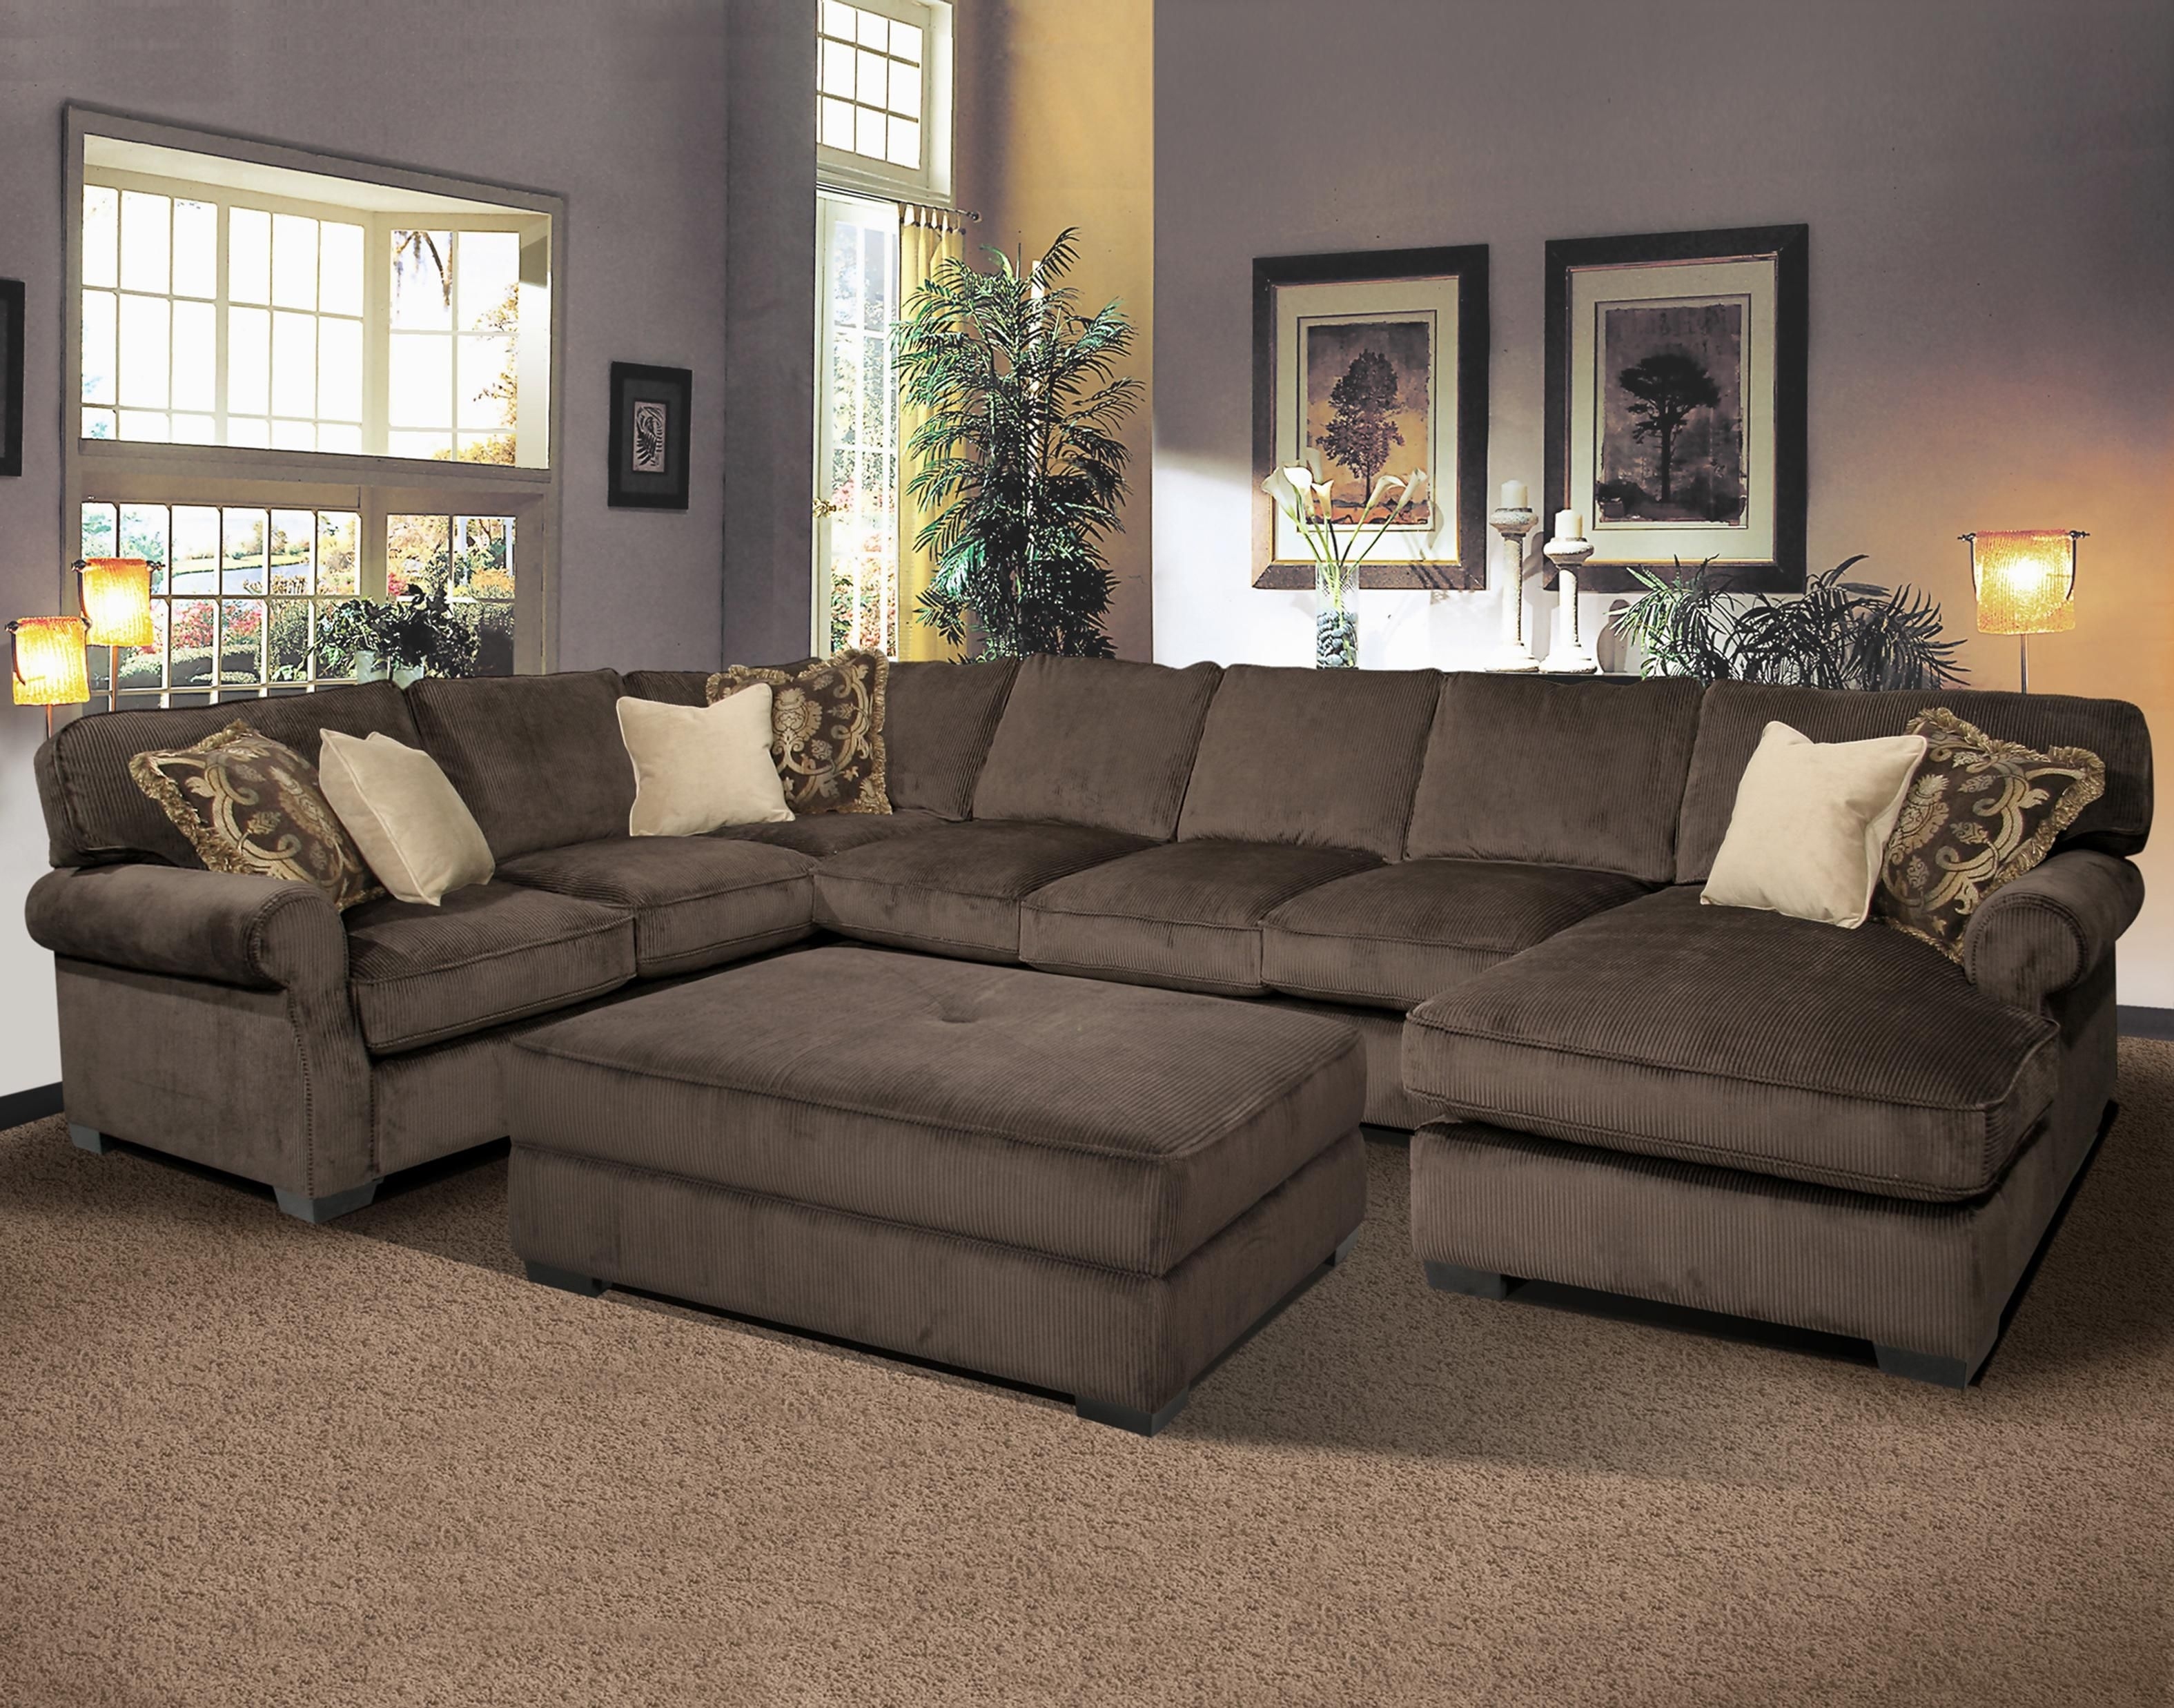 Big And Comfy Grand Island Large, 7 Seat Sectional Sofa With Right Inside Large Sectional Sofas (Image 1 of 10)